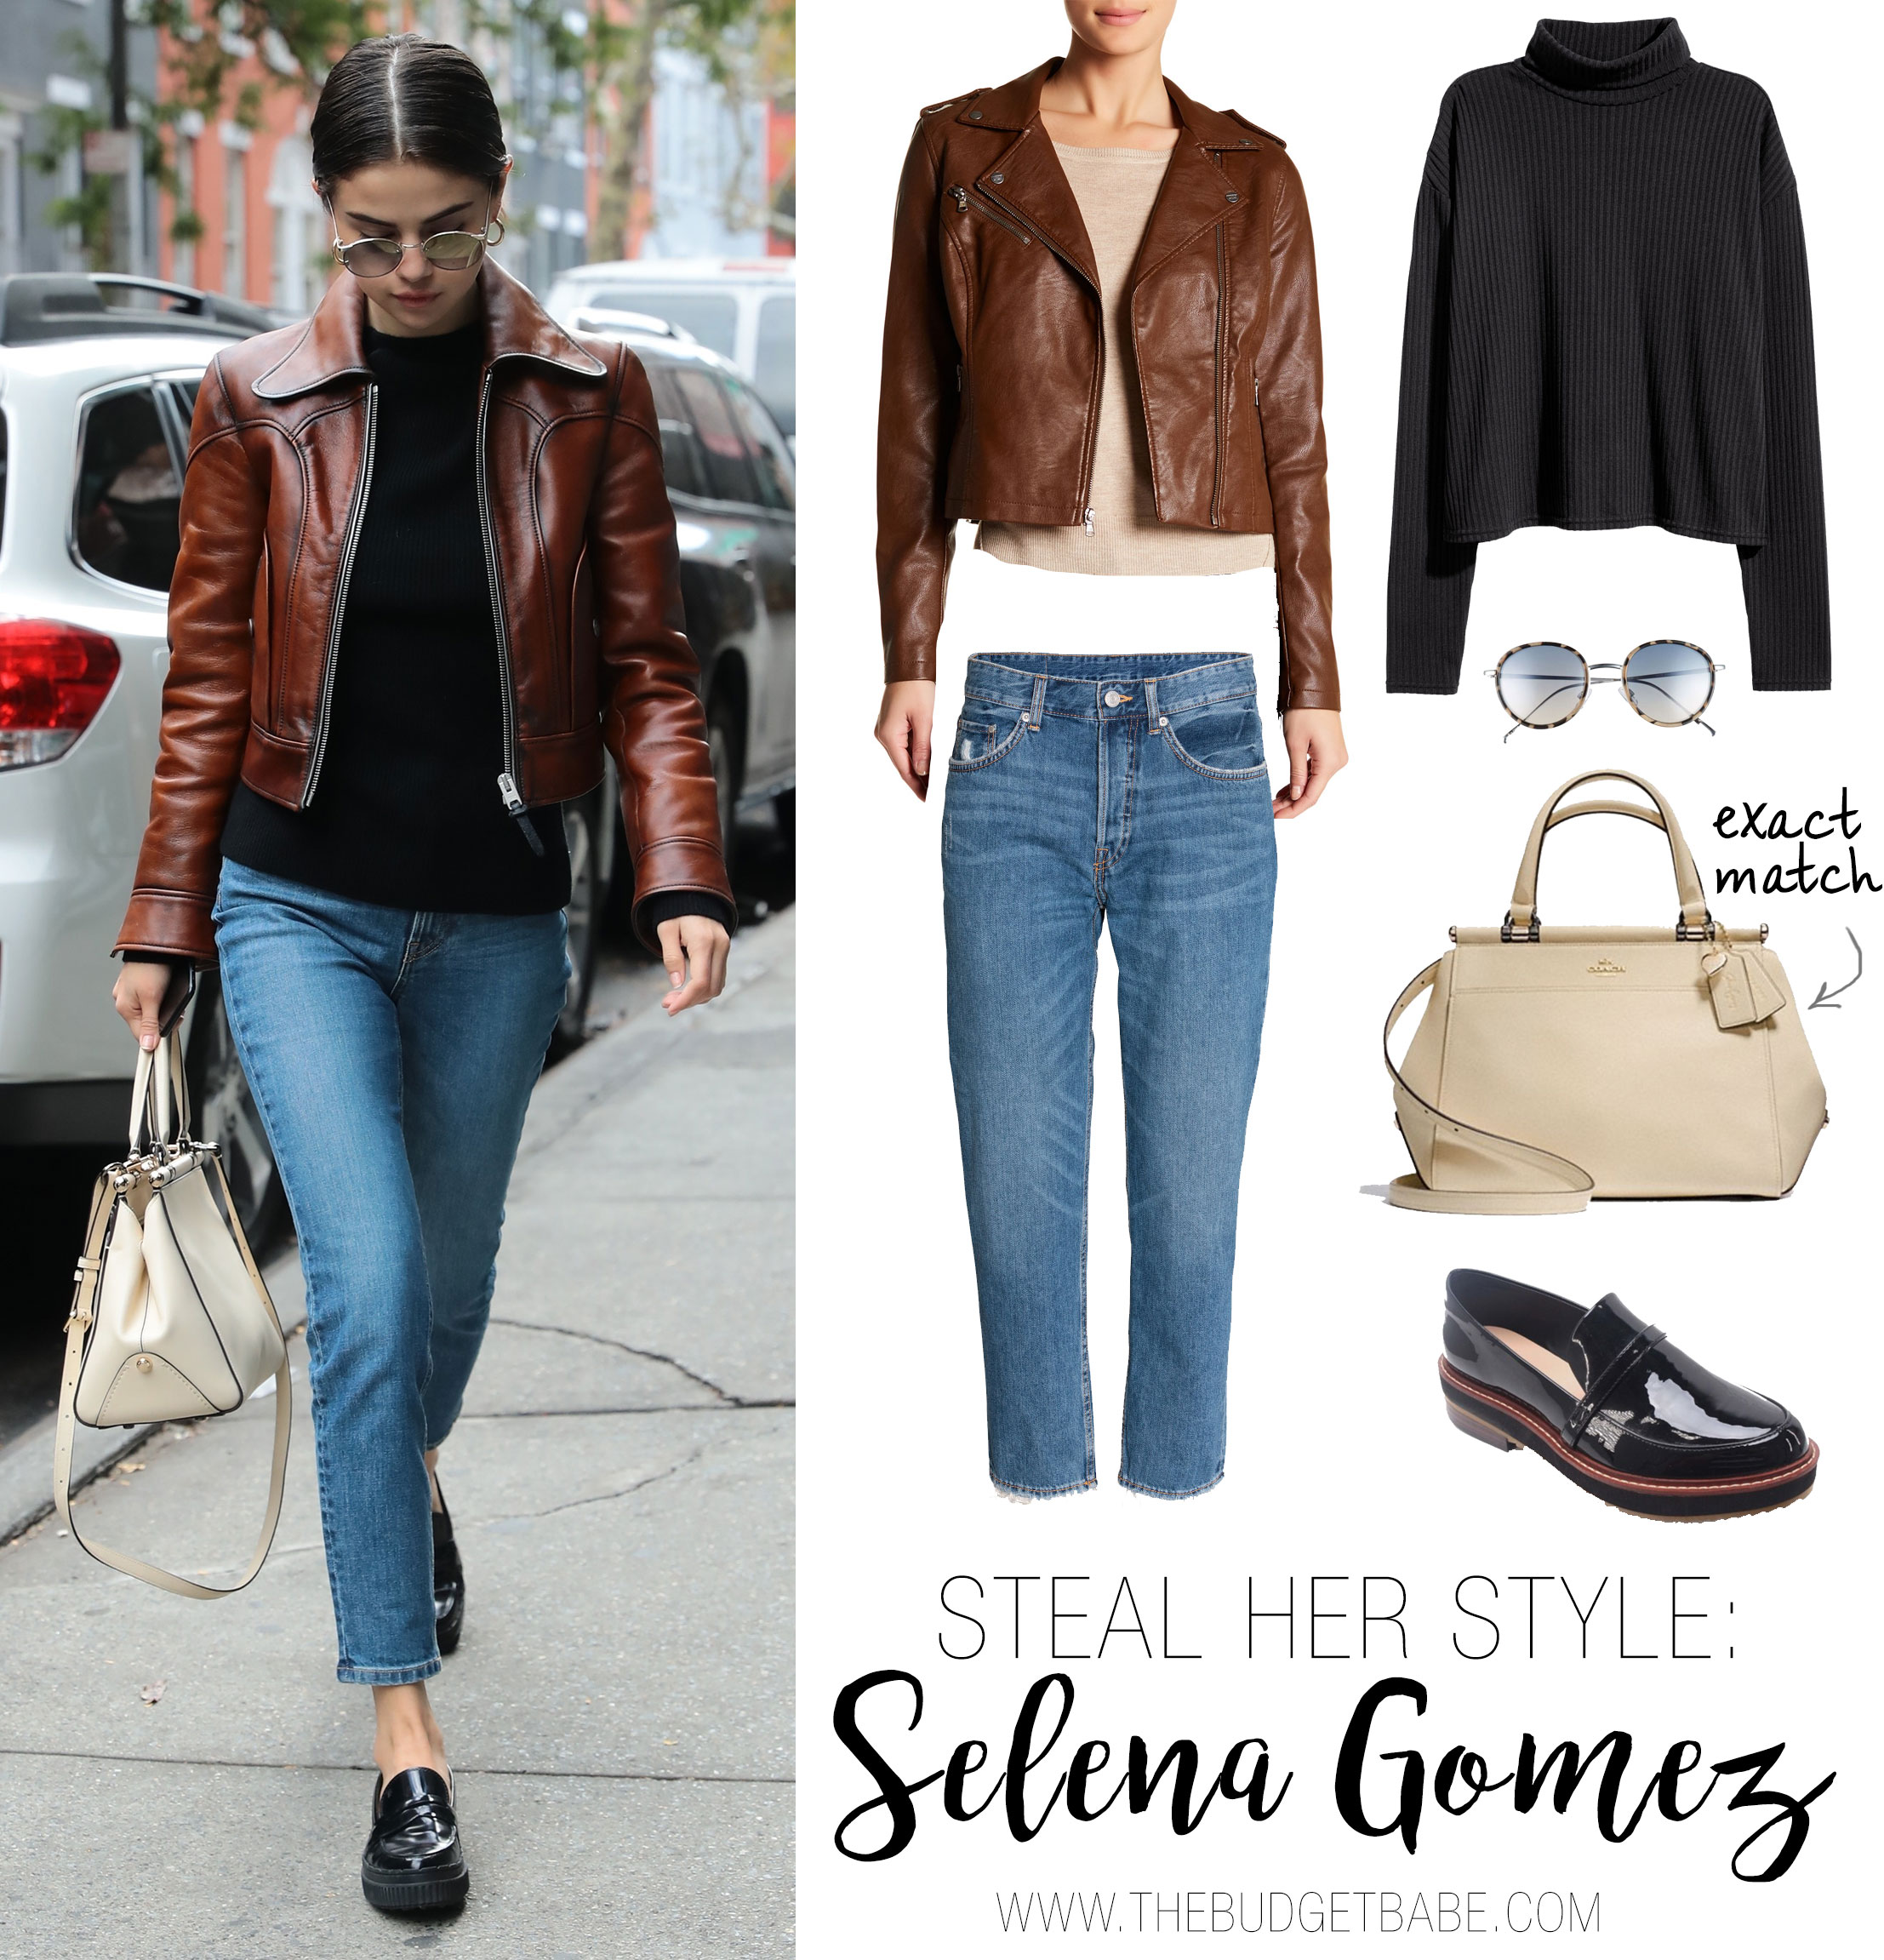 Selena Gomez wears a brown leather moto jacket, black sweater and black loafer flats.